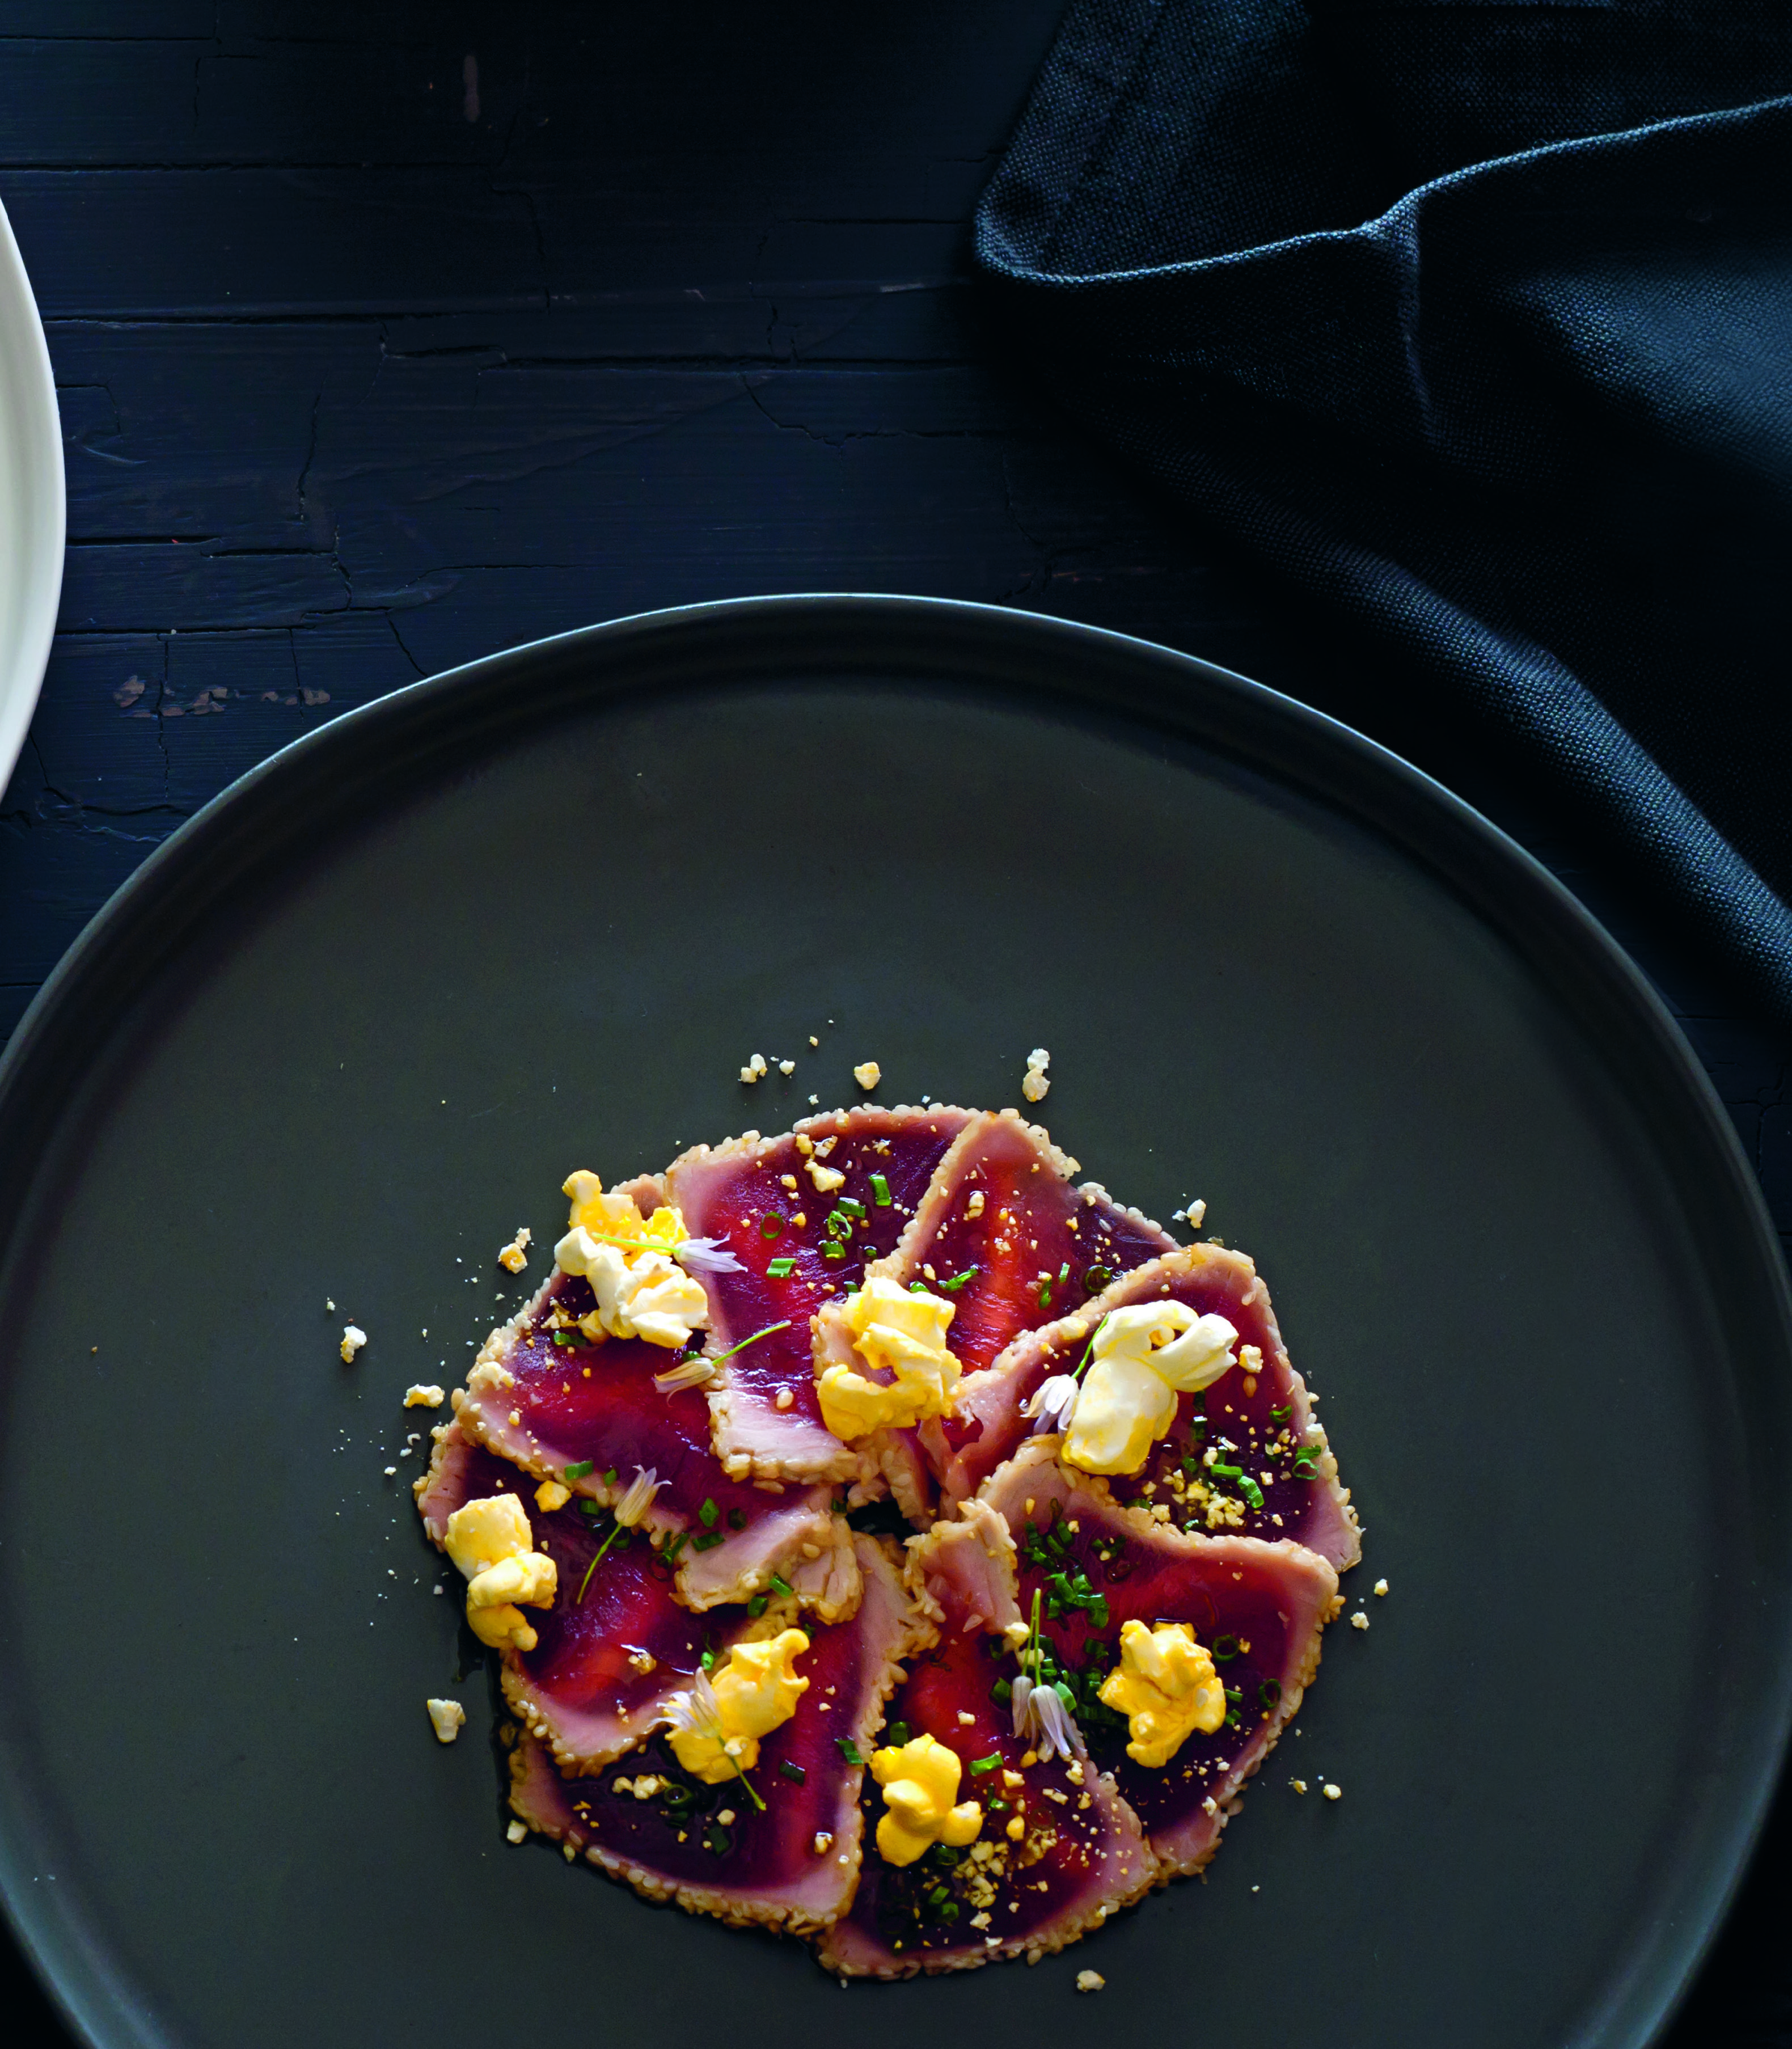 Jim's tuna carpaccio with sesame seeds and salted popcorn